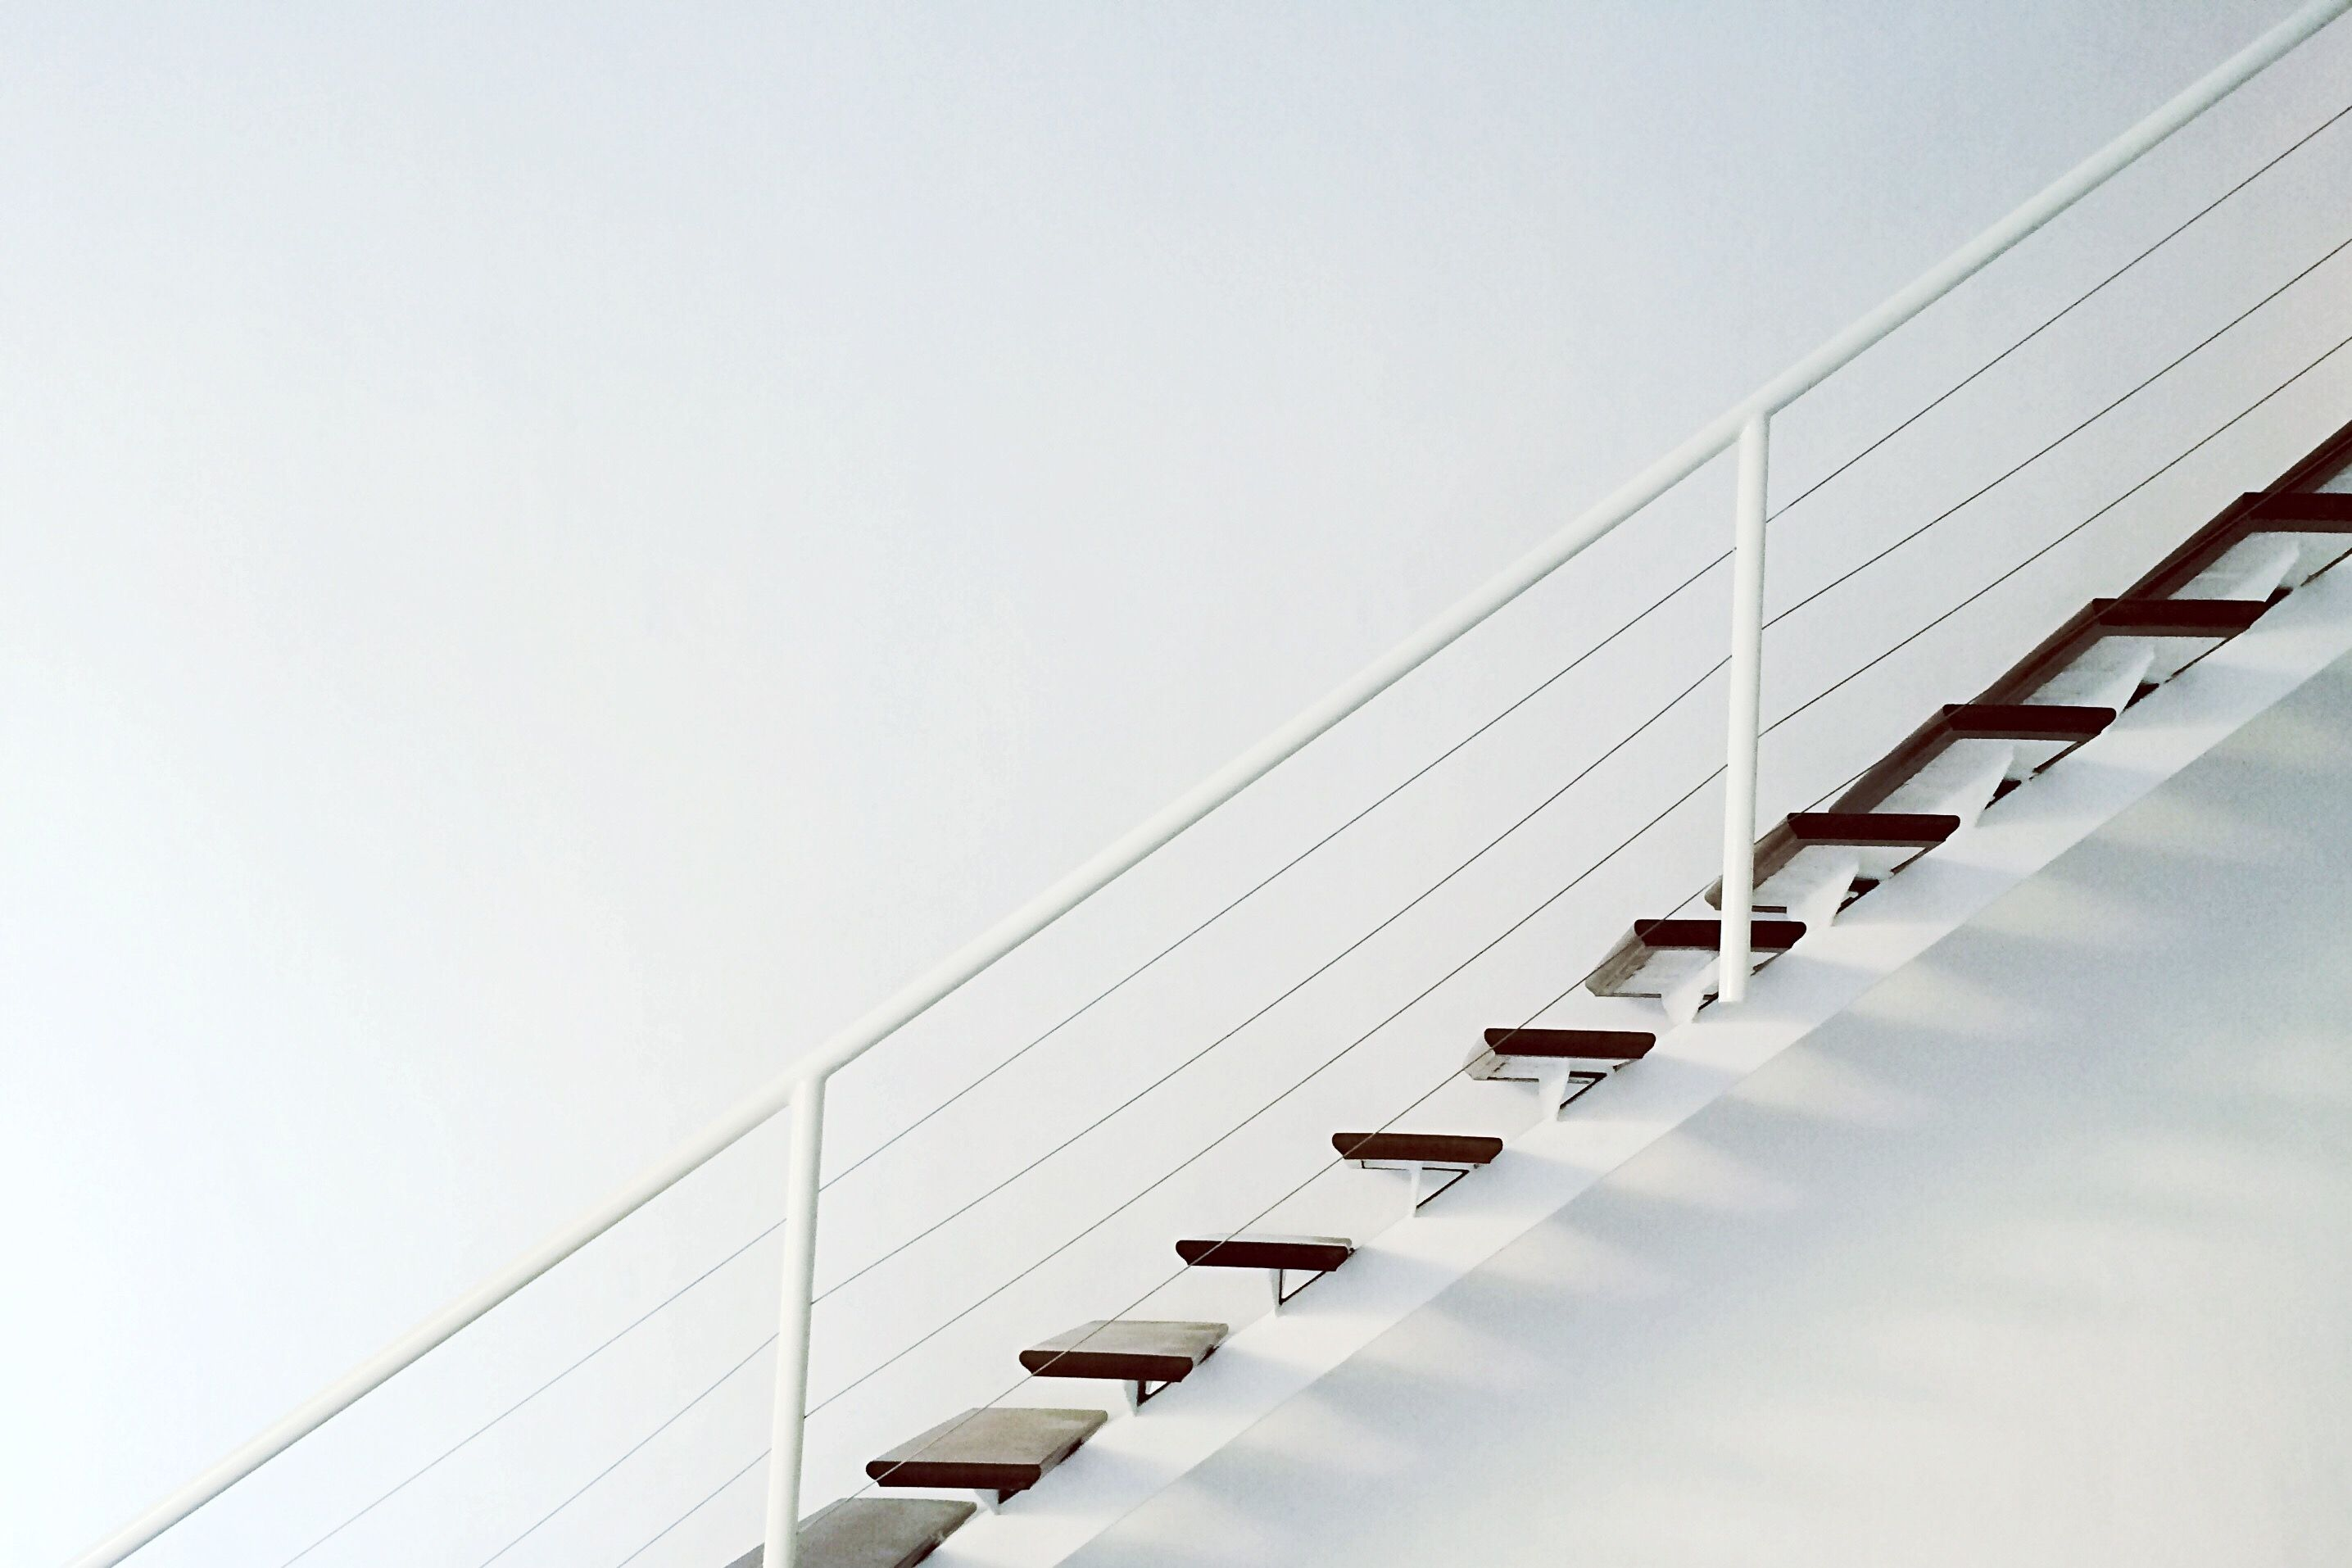 ideas stairway kits stair fittings contemporary interior for cable indoor infill stylish railing